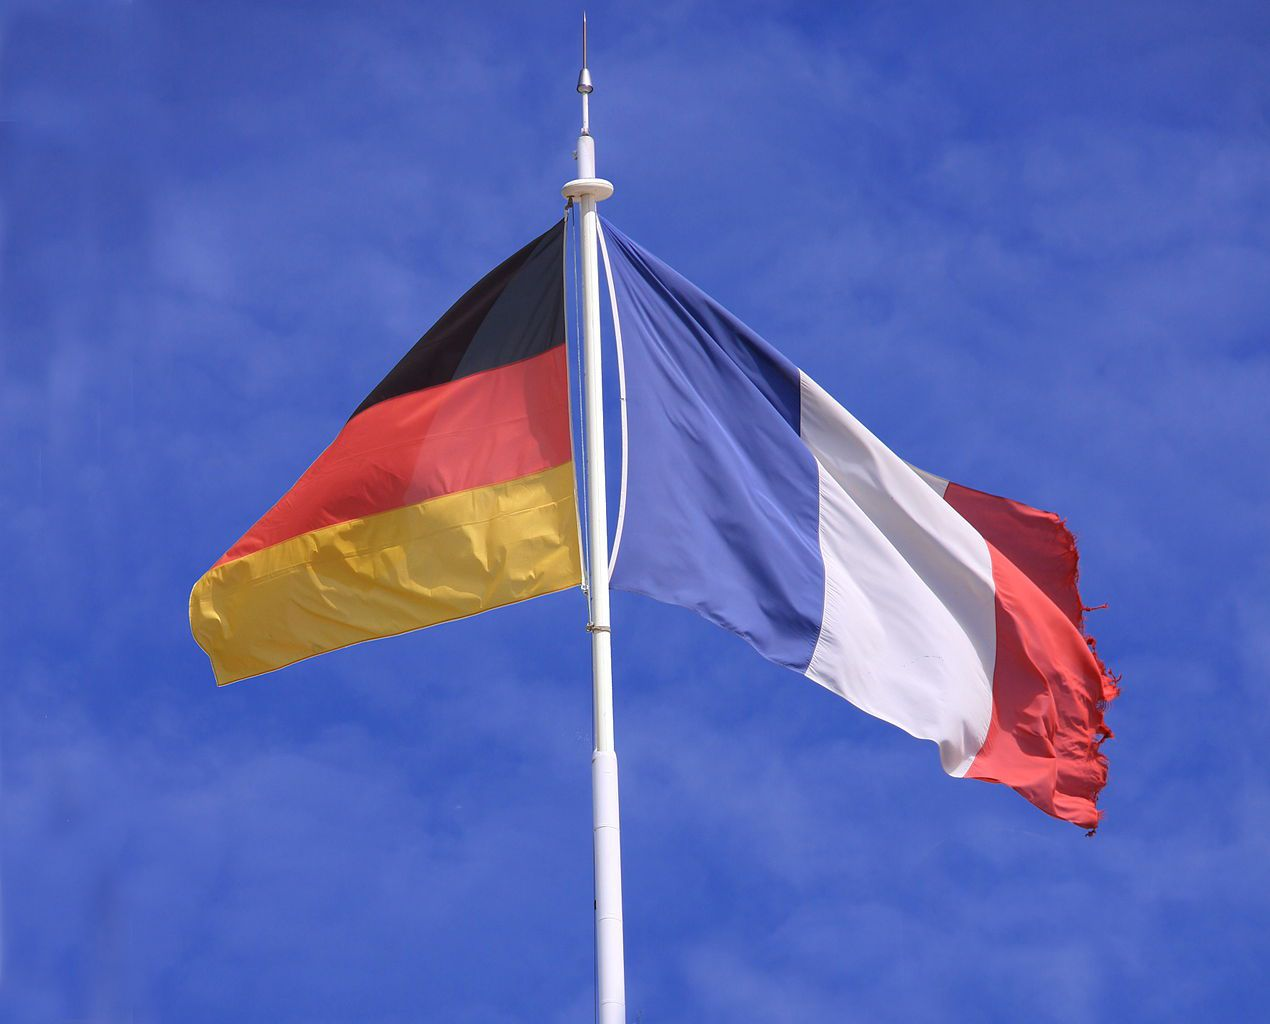 Flags of Germany and France